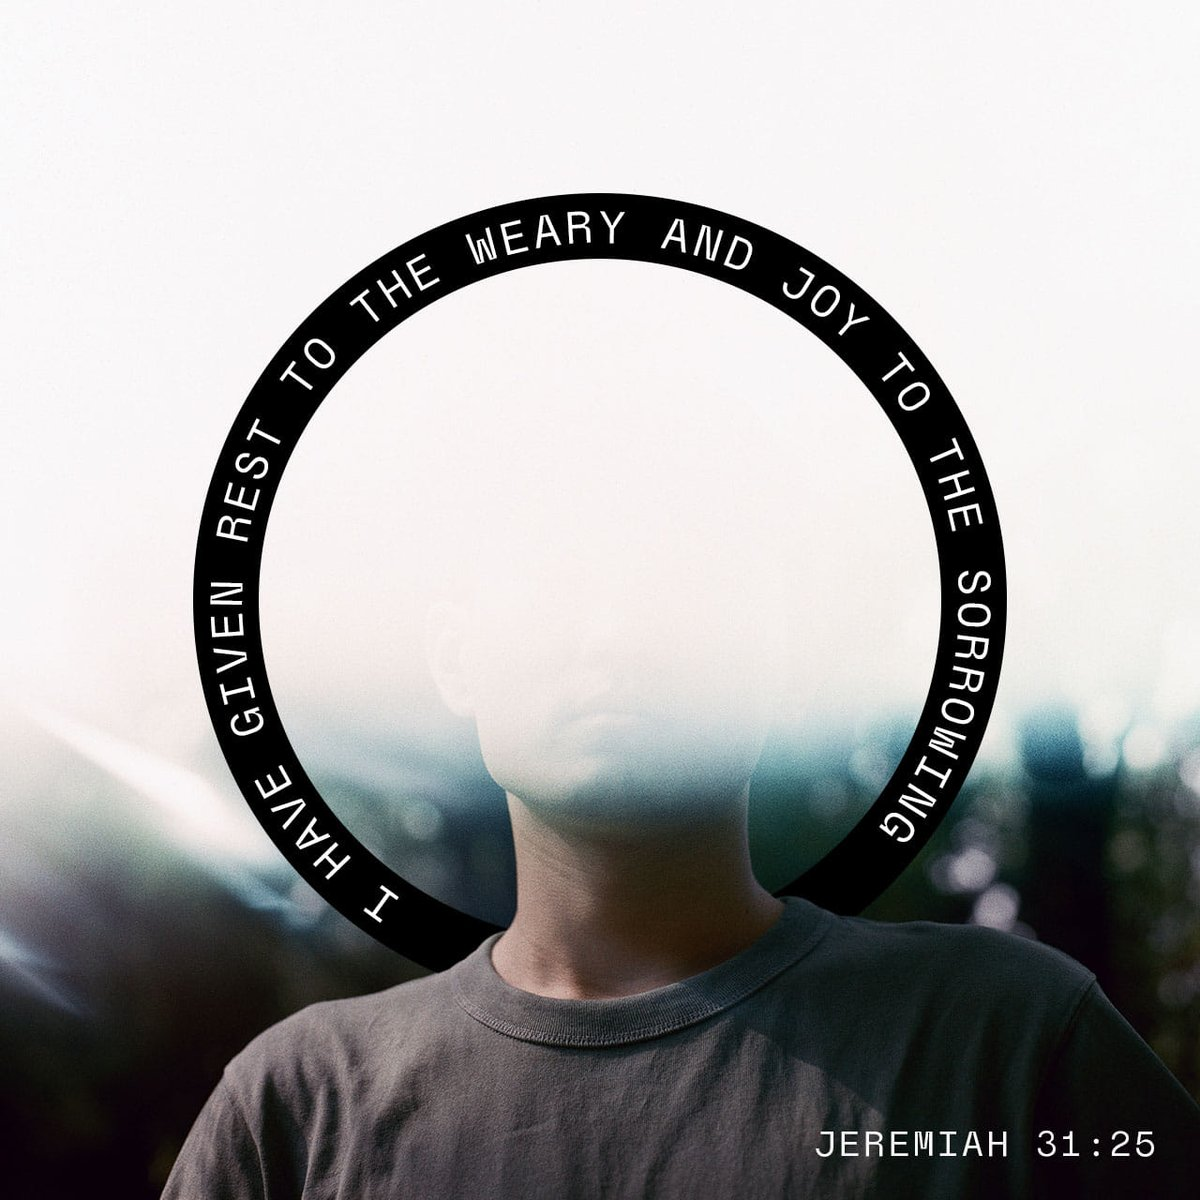 RT @YouVersion: I will refresh the weary and satisfy the faint. - Jeremiah 31:25 https://t.co/SzLAMGrQe3